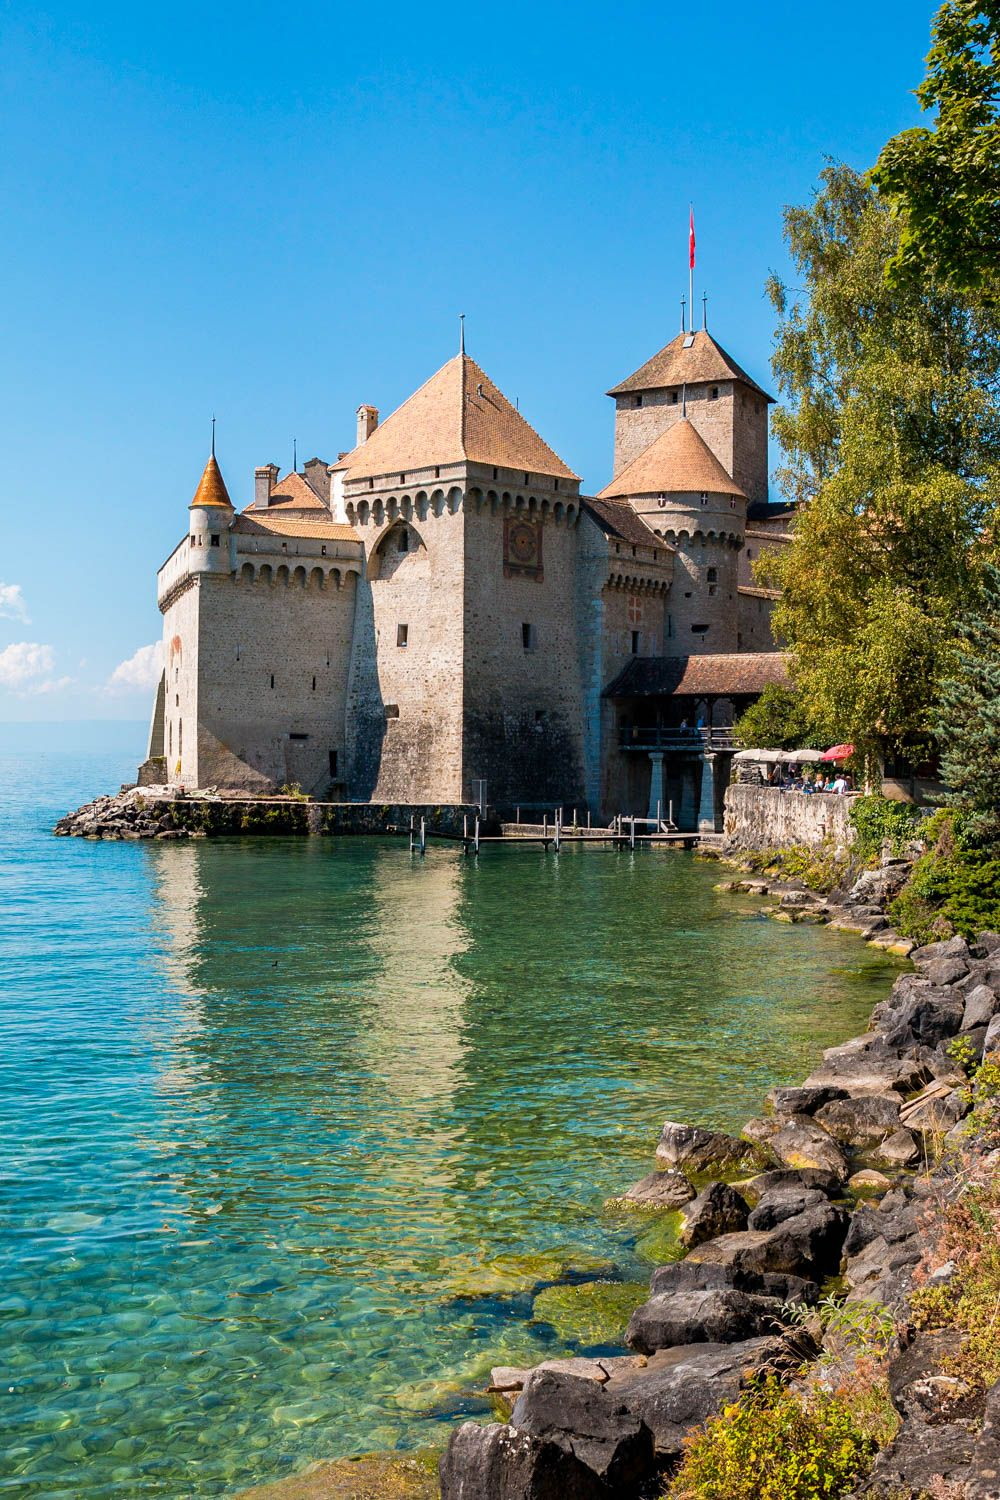 A Castle In Switzerland Visiting Chateau De Chillon At Lake